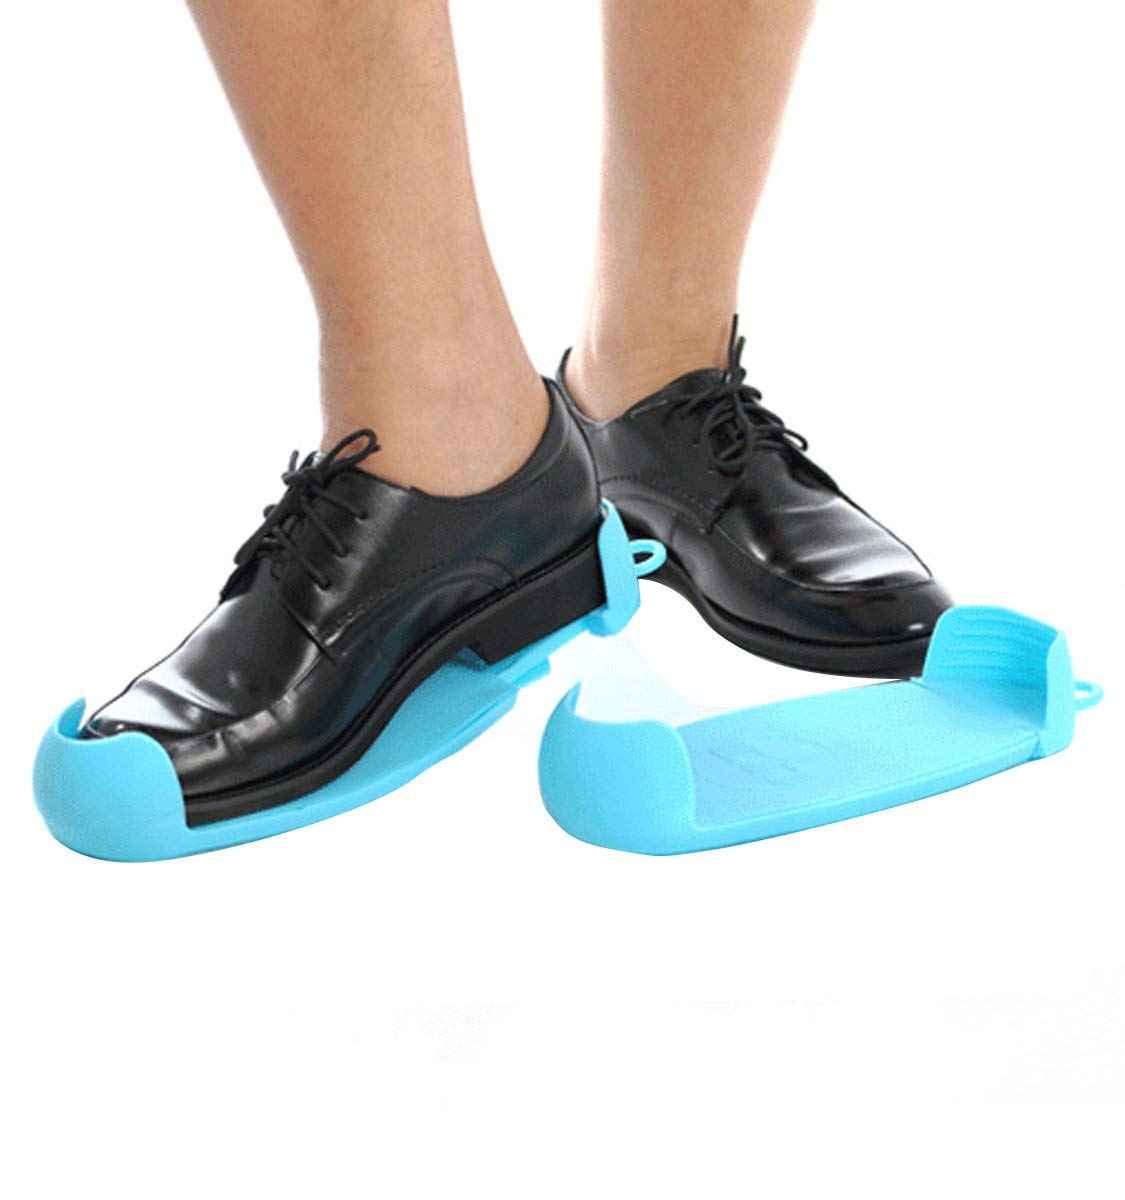 Scaleable Water Resistant Shoe Cover Slip Resistant Reusable Shoe Boot Cover for Men Women, Blue 210-270mm